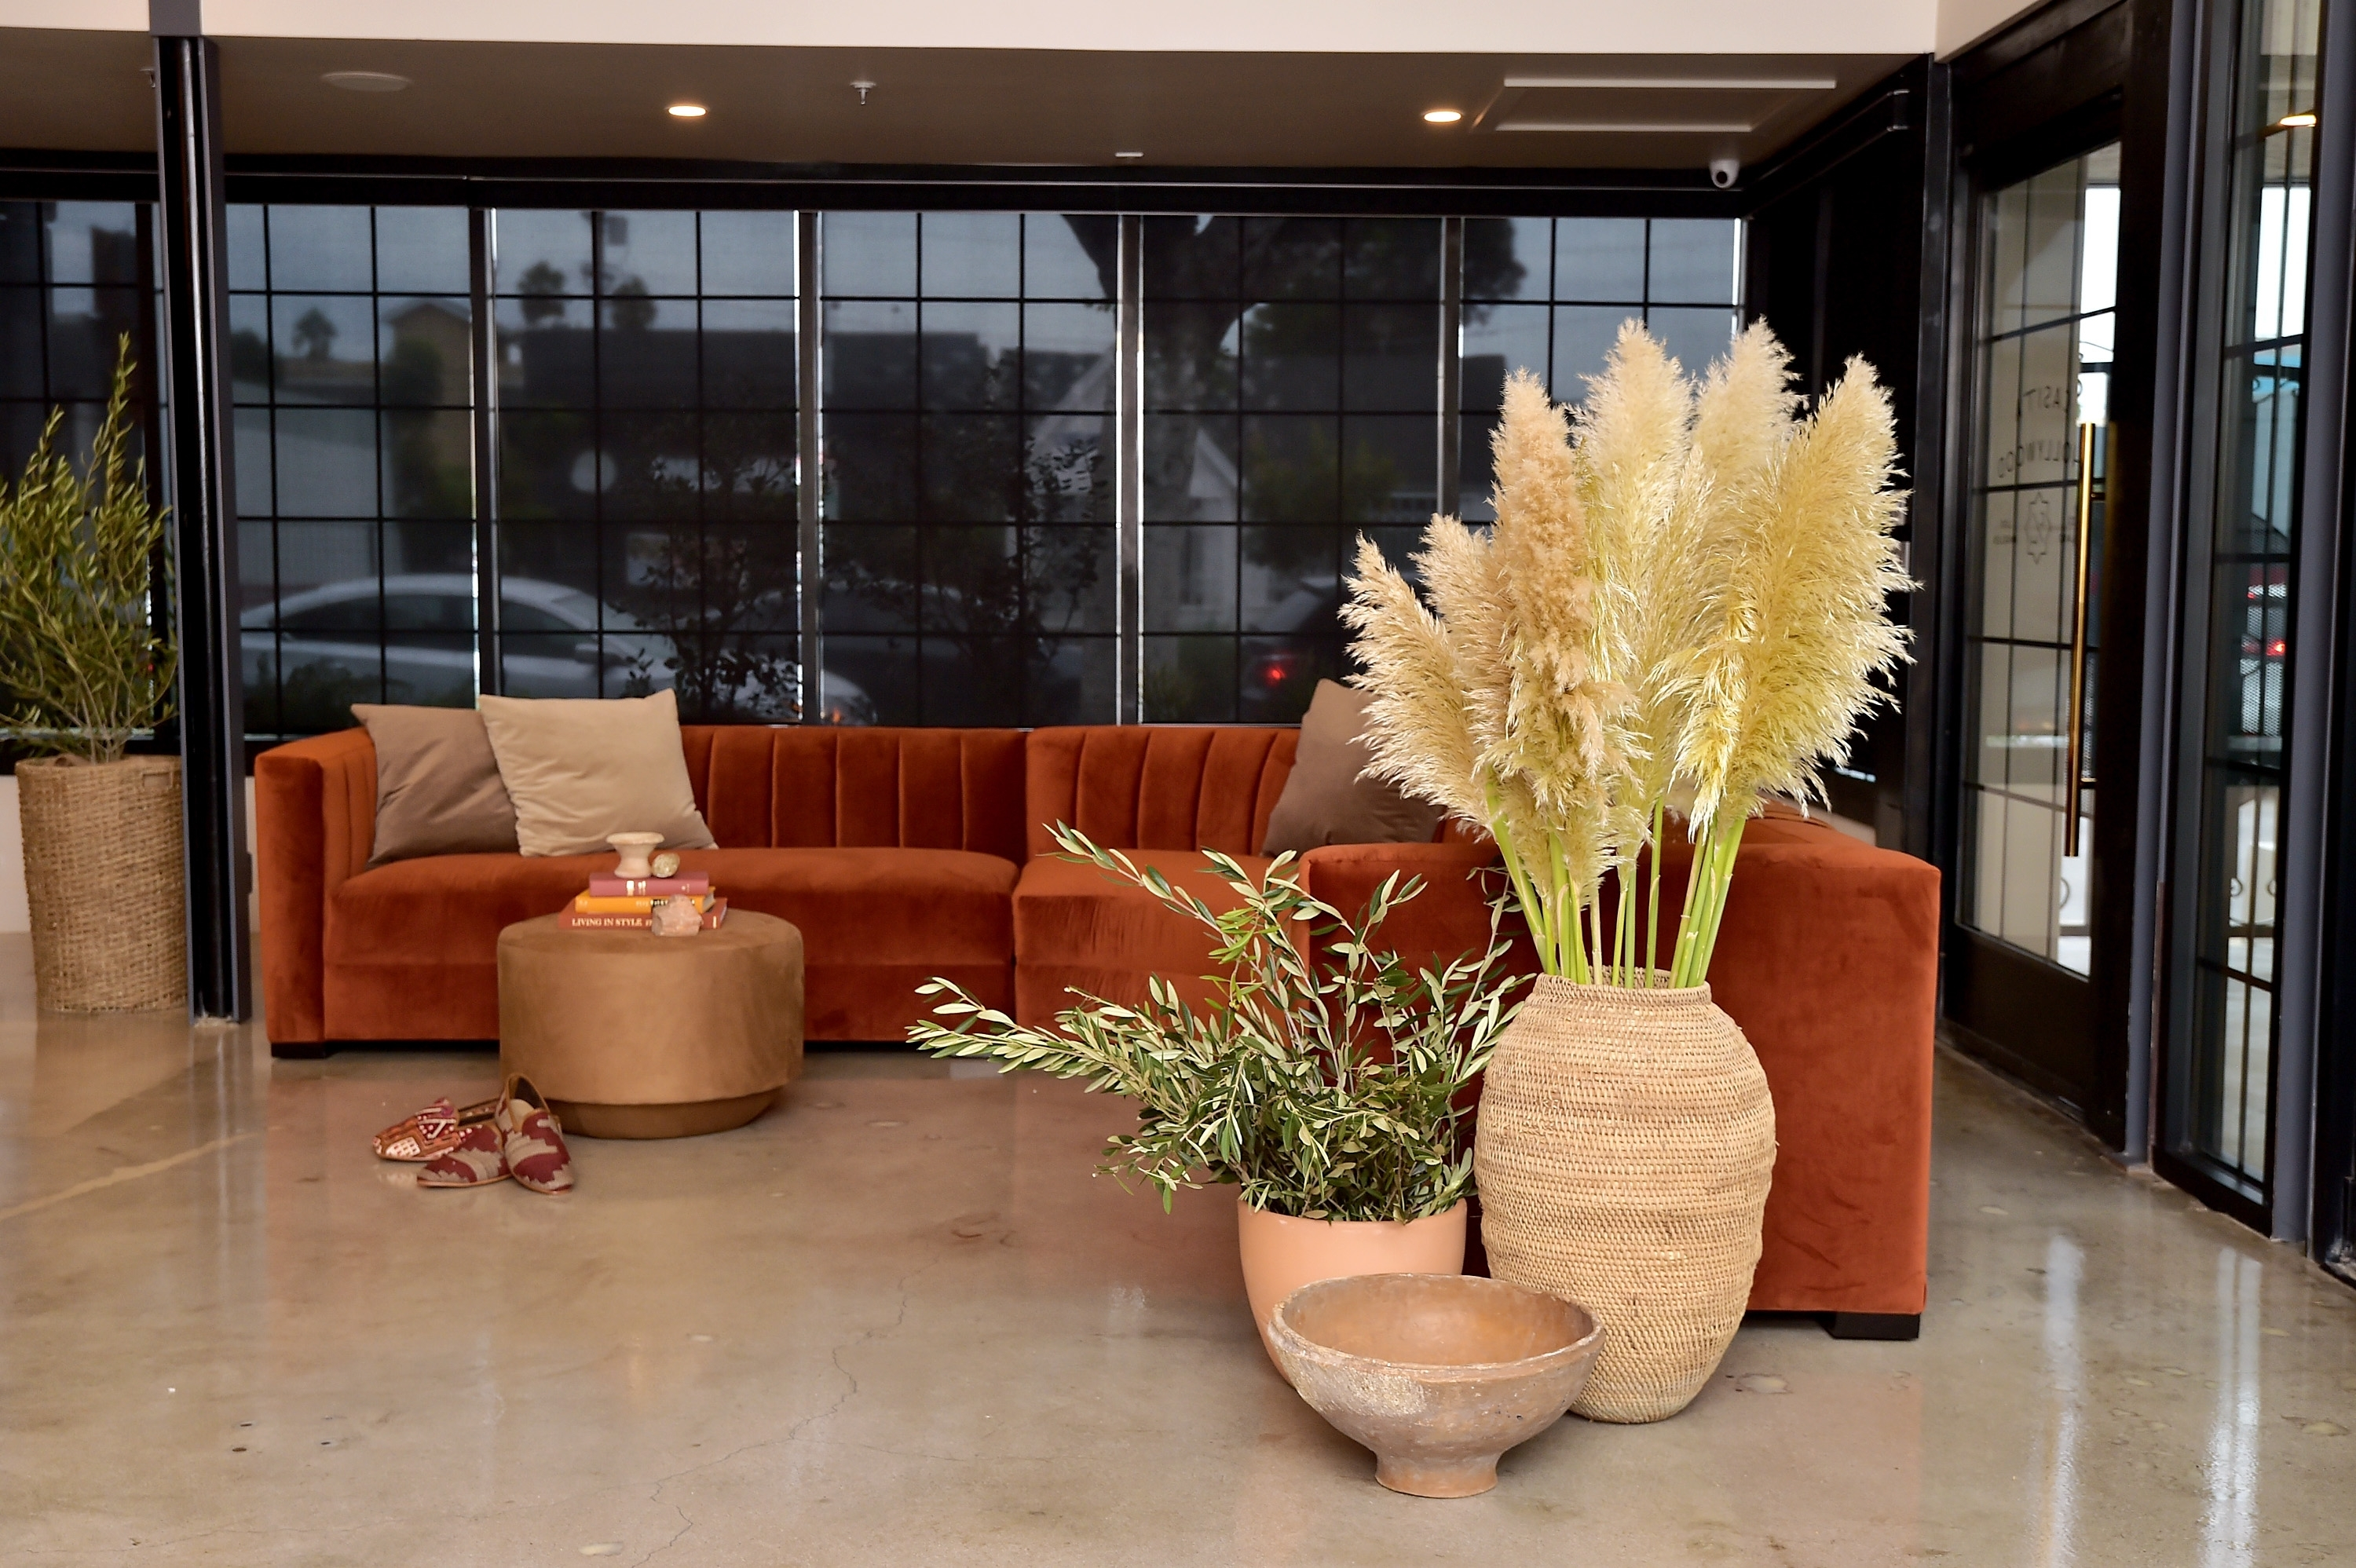 Rue On The Town: Celebrating Nate Berkus And Jeremiah Brent For In Soane 3 Piece Sectionals By Nate Berkus And Jeremiah Brent (Image 17 of 25)